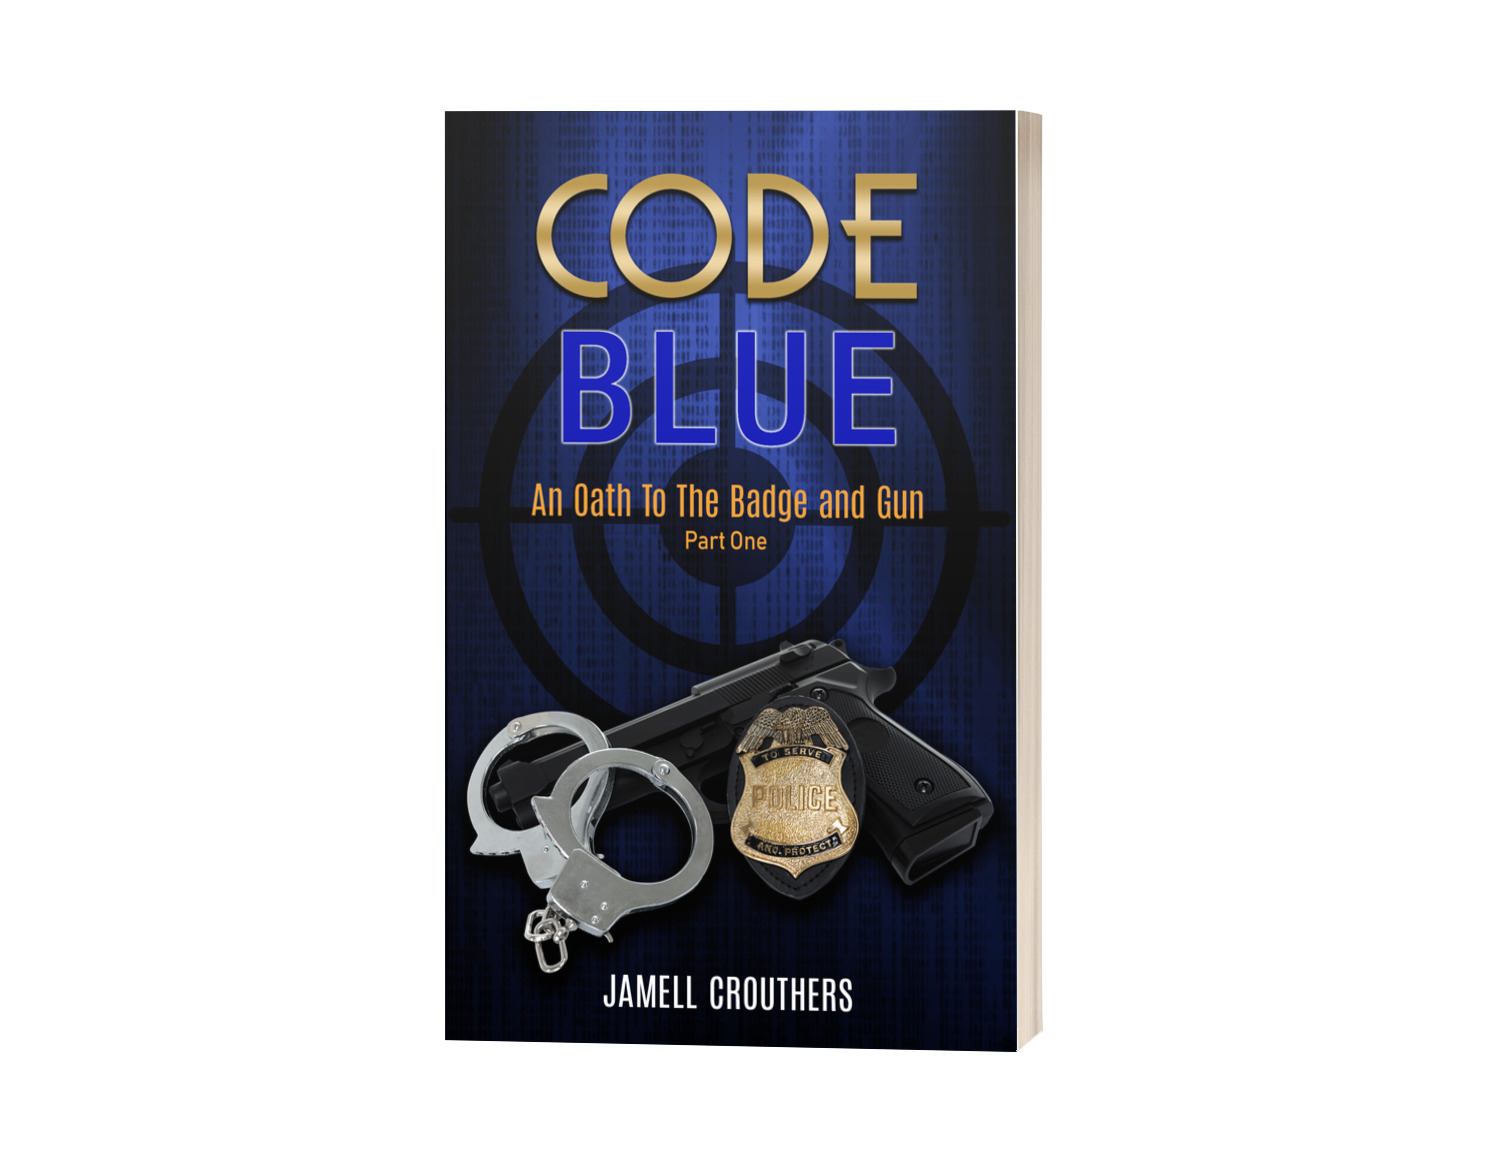 Code Blue Part 1 tackles various social issues that permeate police departments around the country. Gary is a good cop caught up in a lot of corruption.